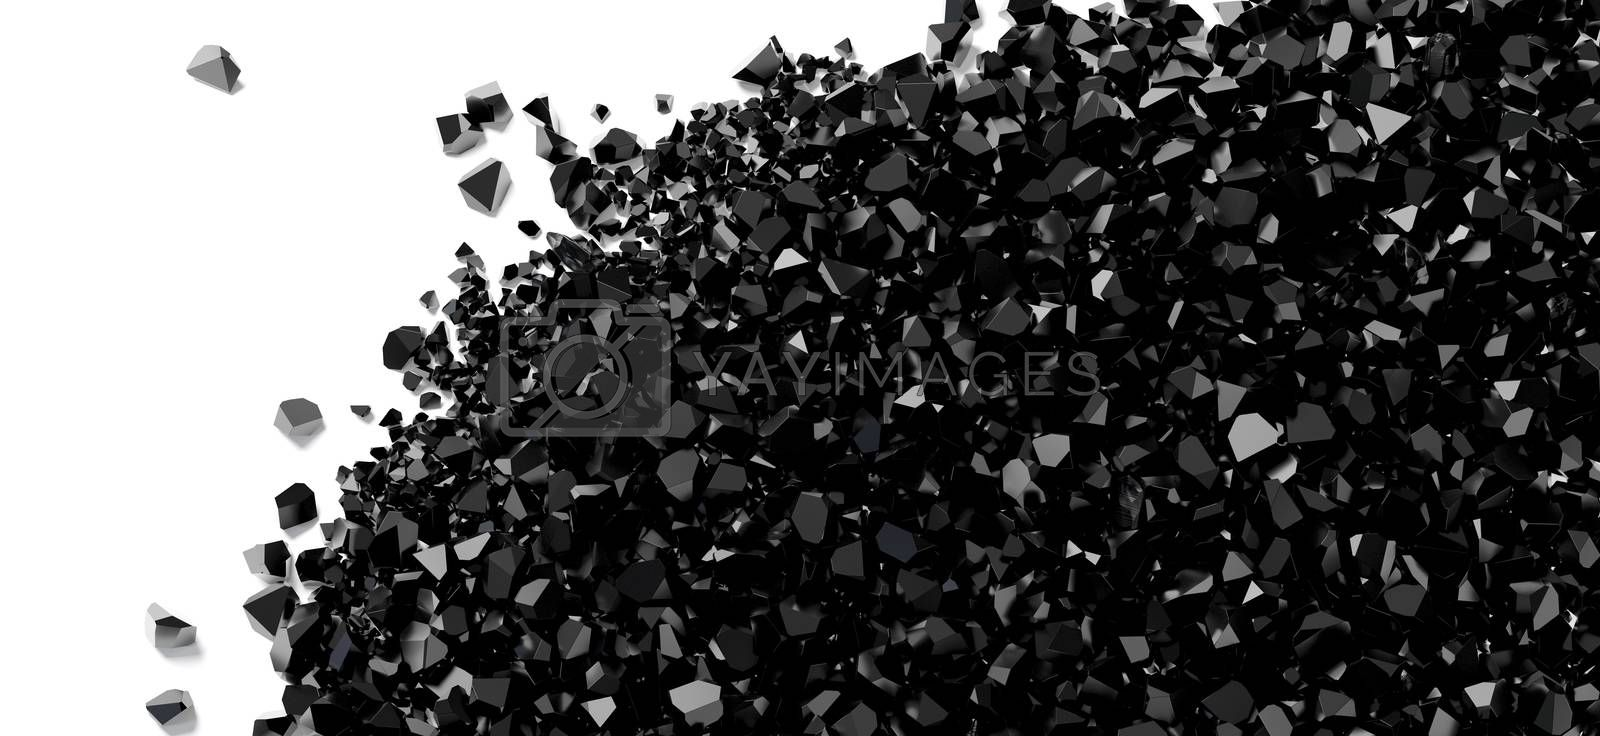 small black stones on a white background